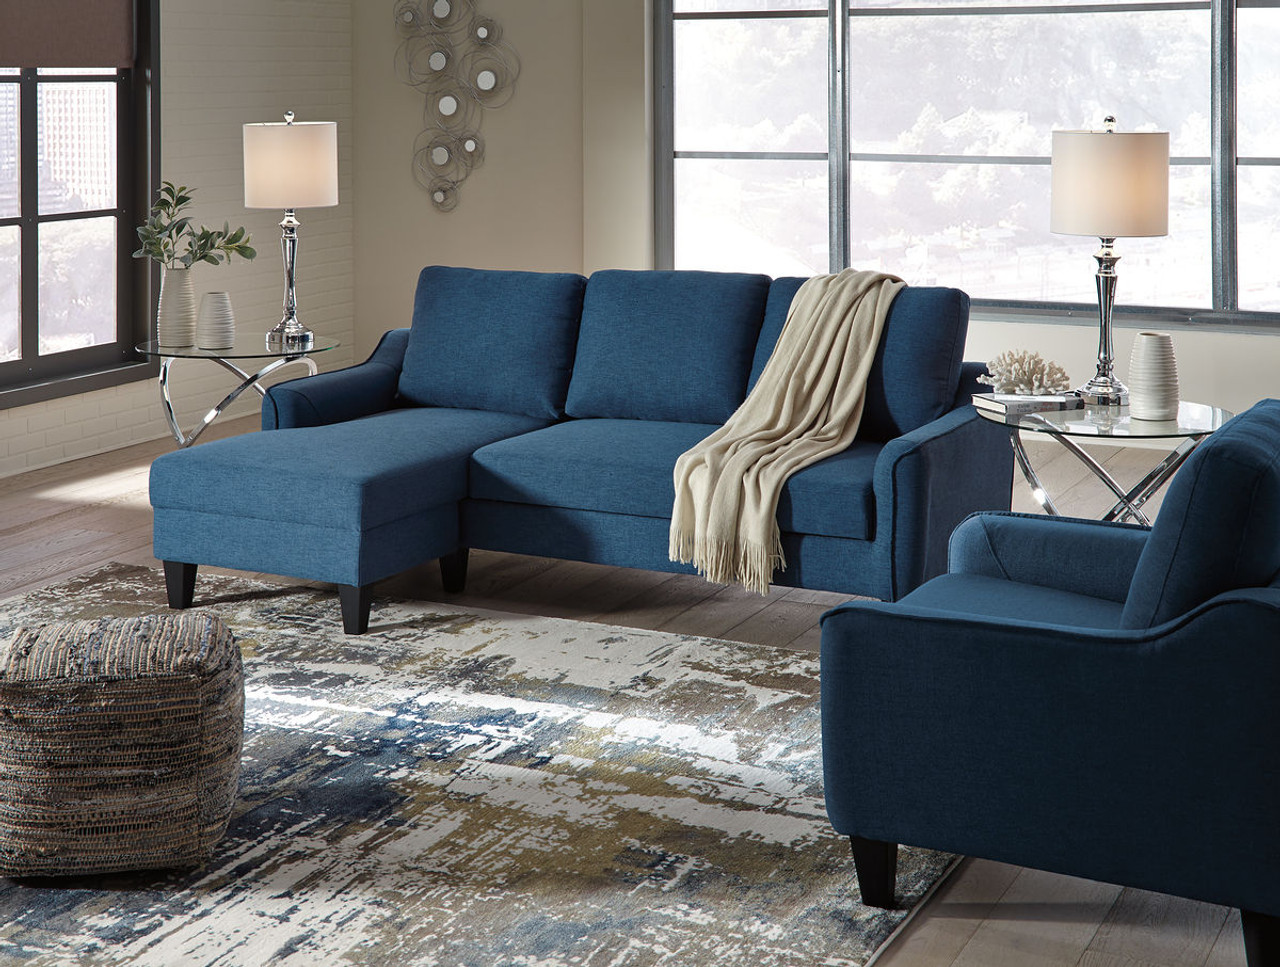 Fabulous Ashley Jarreau Blue Queen Sofa Sleeper Chair Dailytribune Chair Design For Home Dailytribuneorg